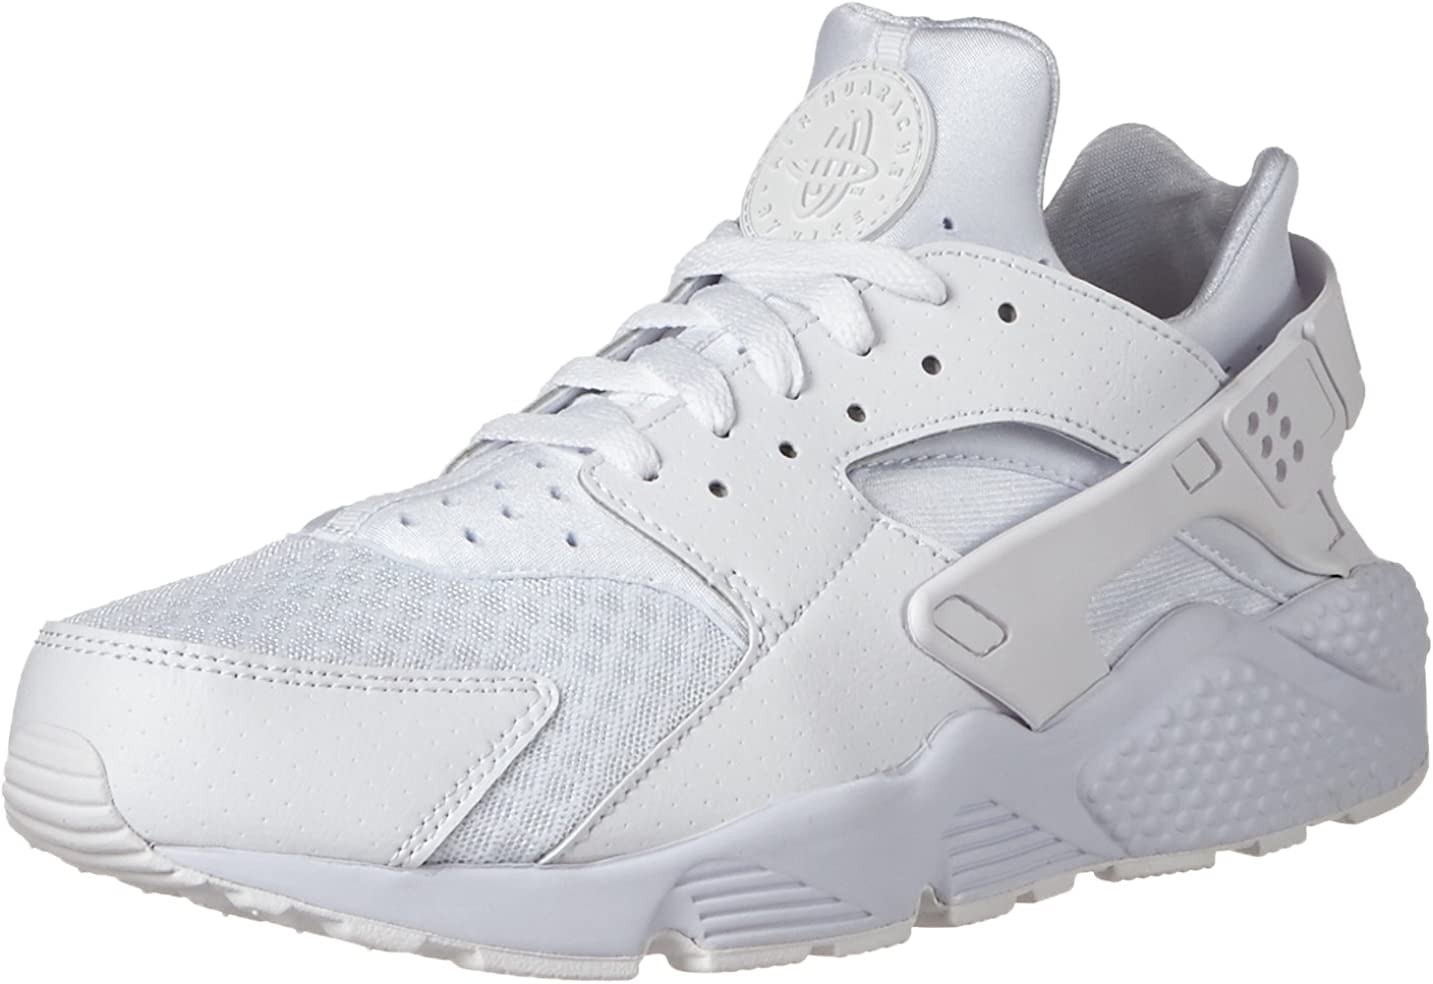 NIKE Men s Air Huarache Run Ultra Pure Platinum Black-Igloo 819685-006 Shoe